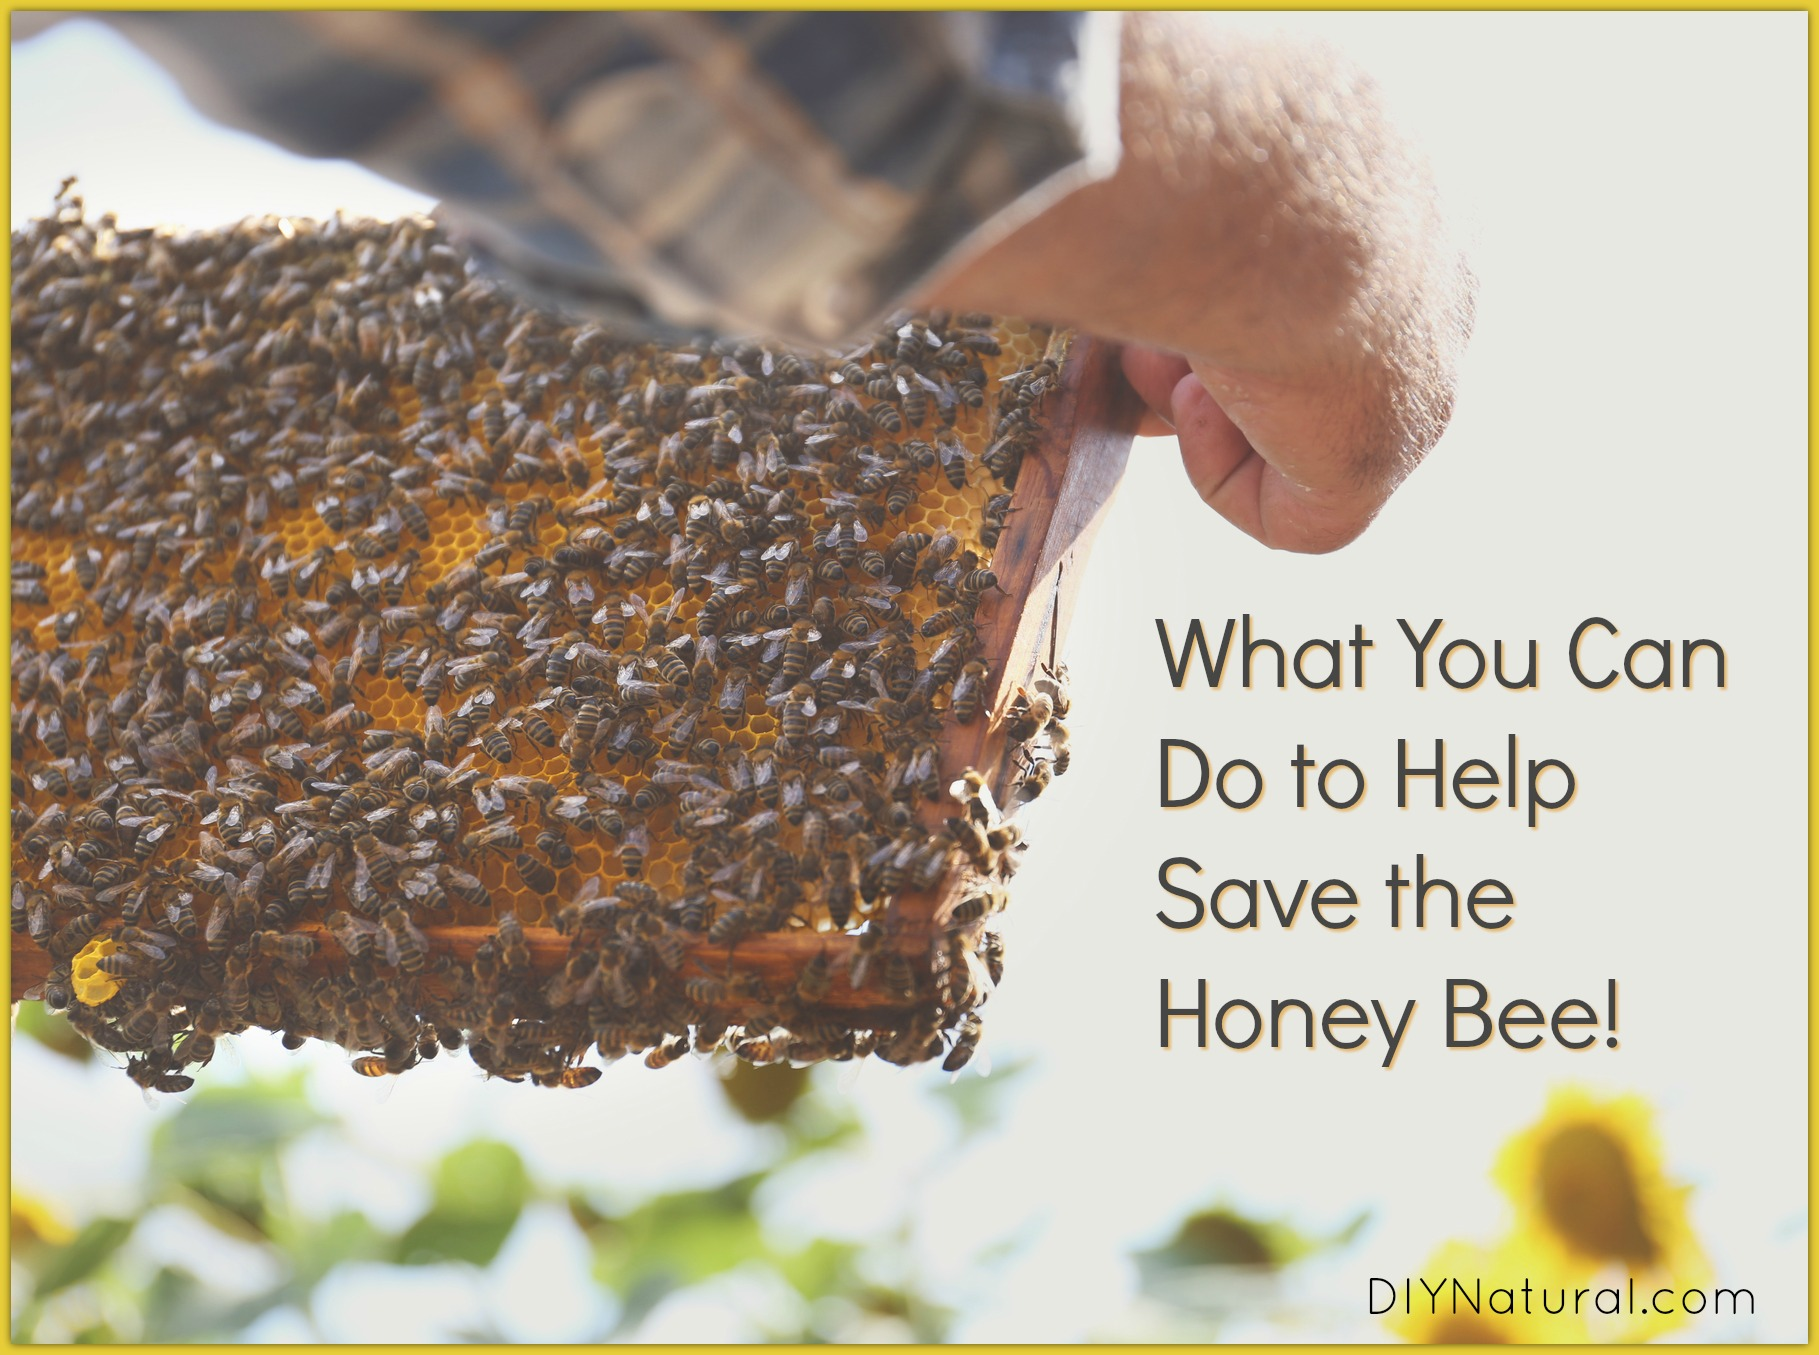 How to Help Save Honey Bees picture